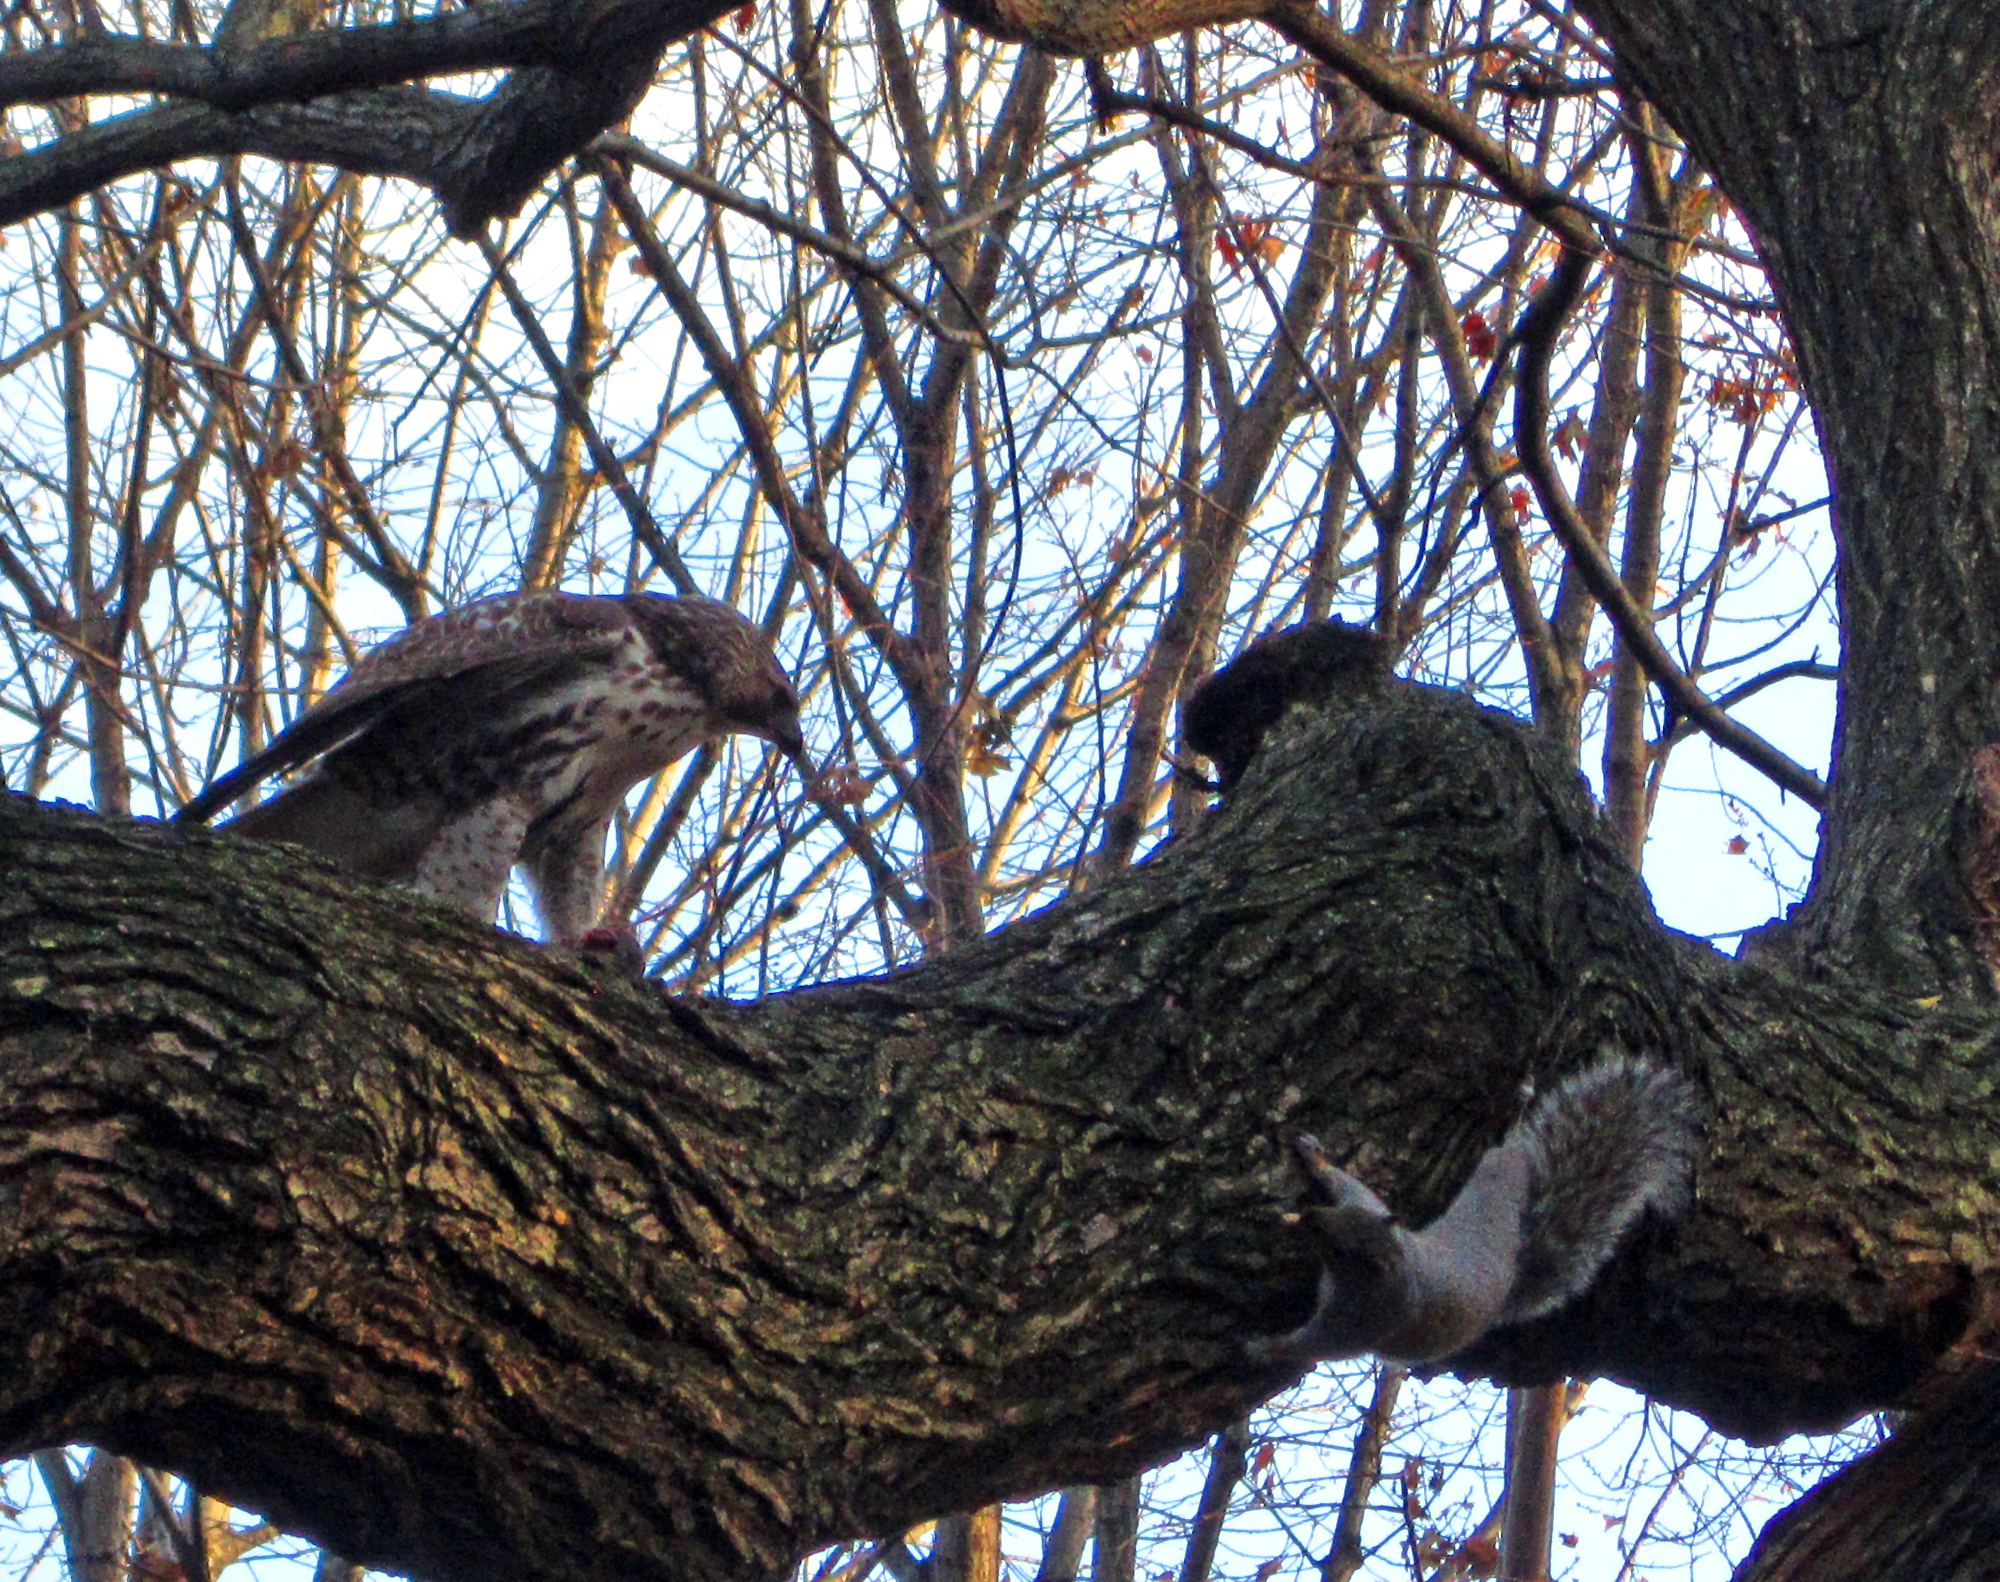 Hawk vs squirrel